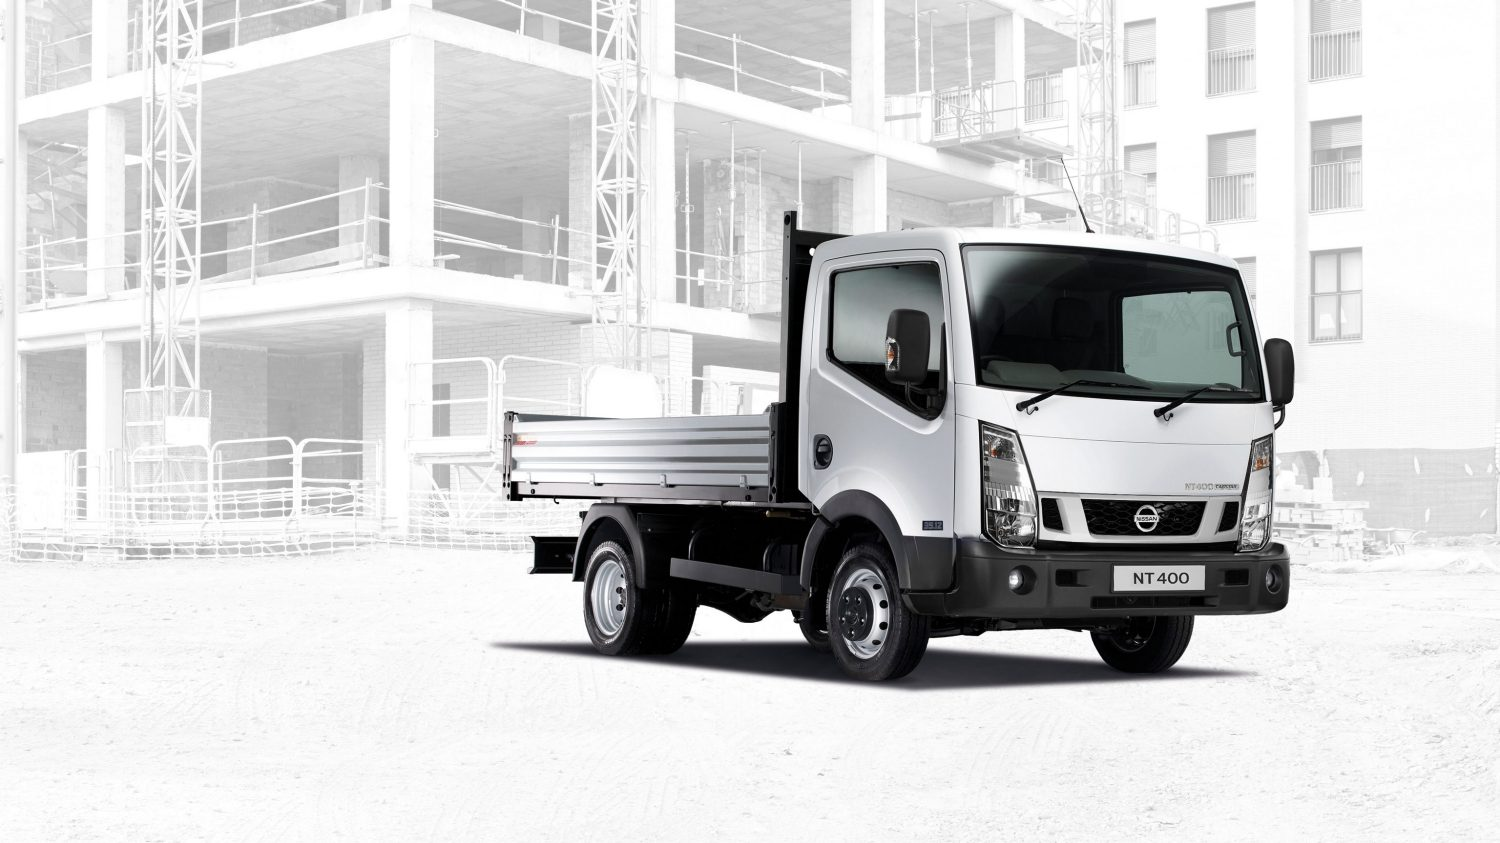 Cabstar| Nissan NT400 | Chassis cab exterior